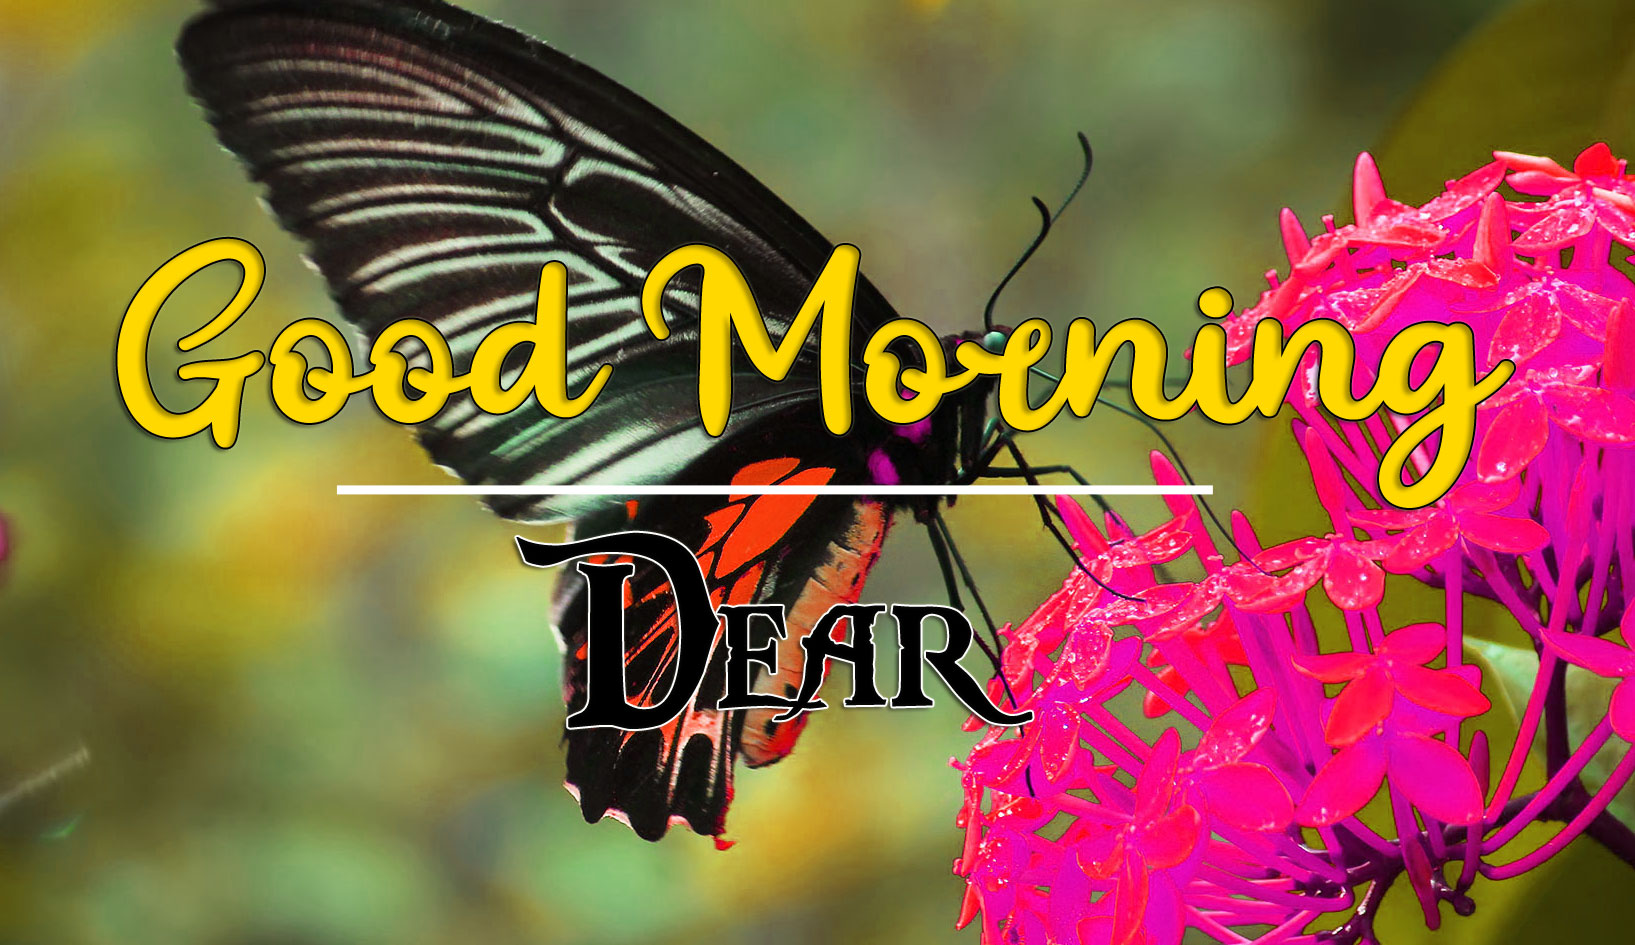 Good Morning Wishes Images HD 1080p 15